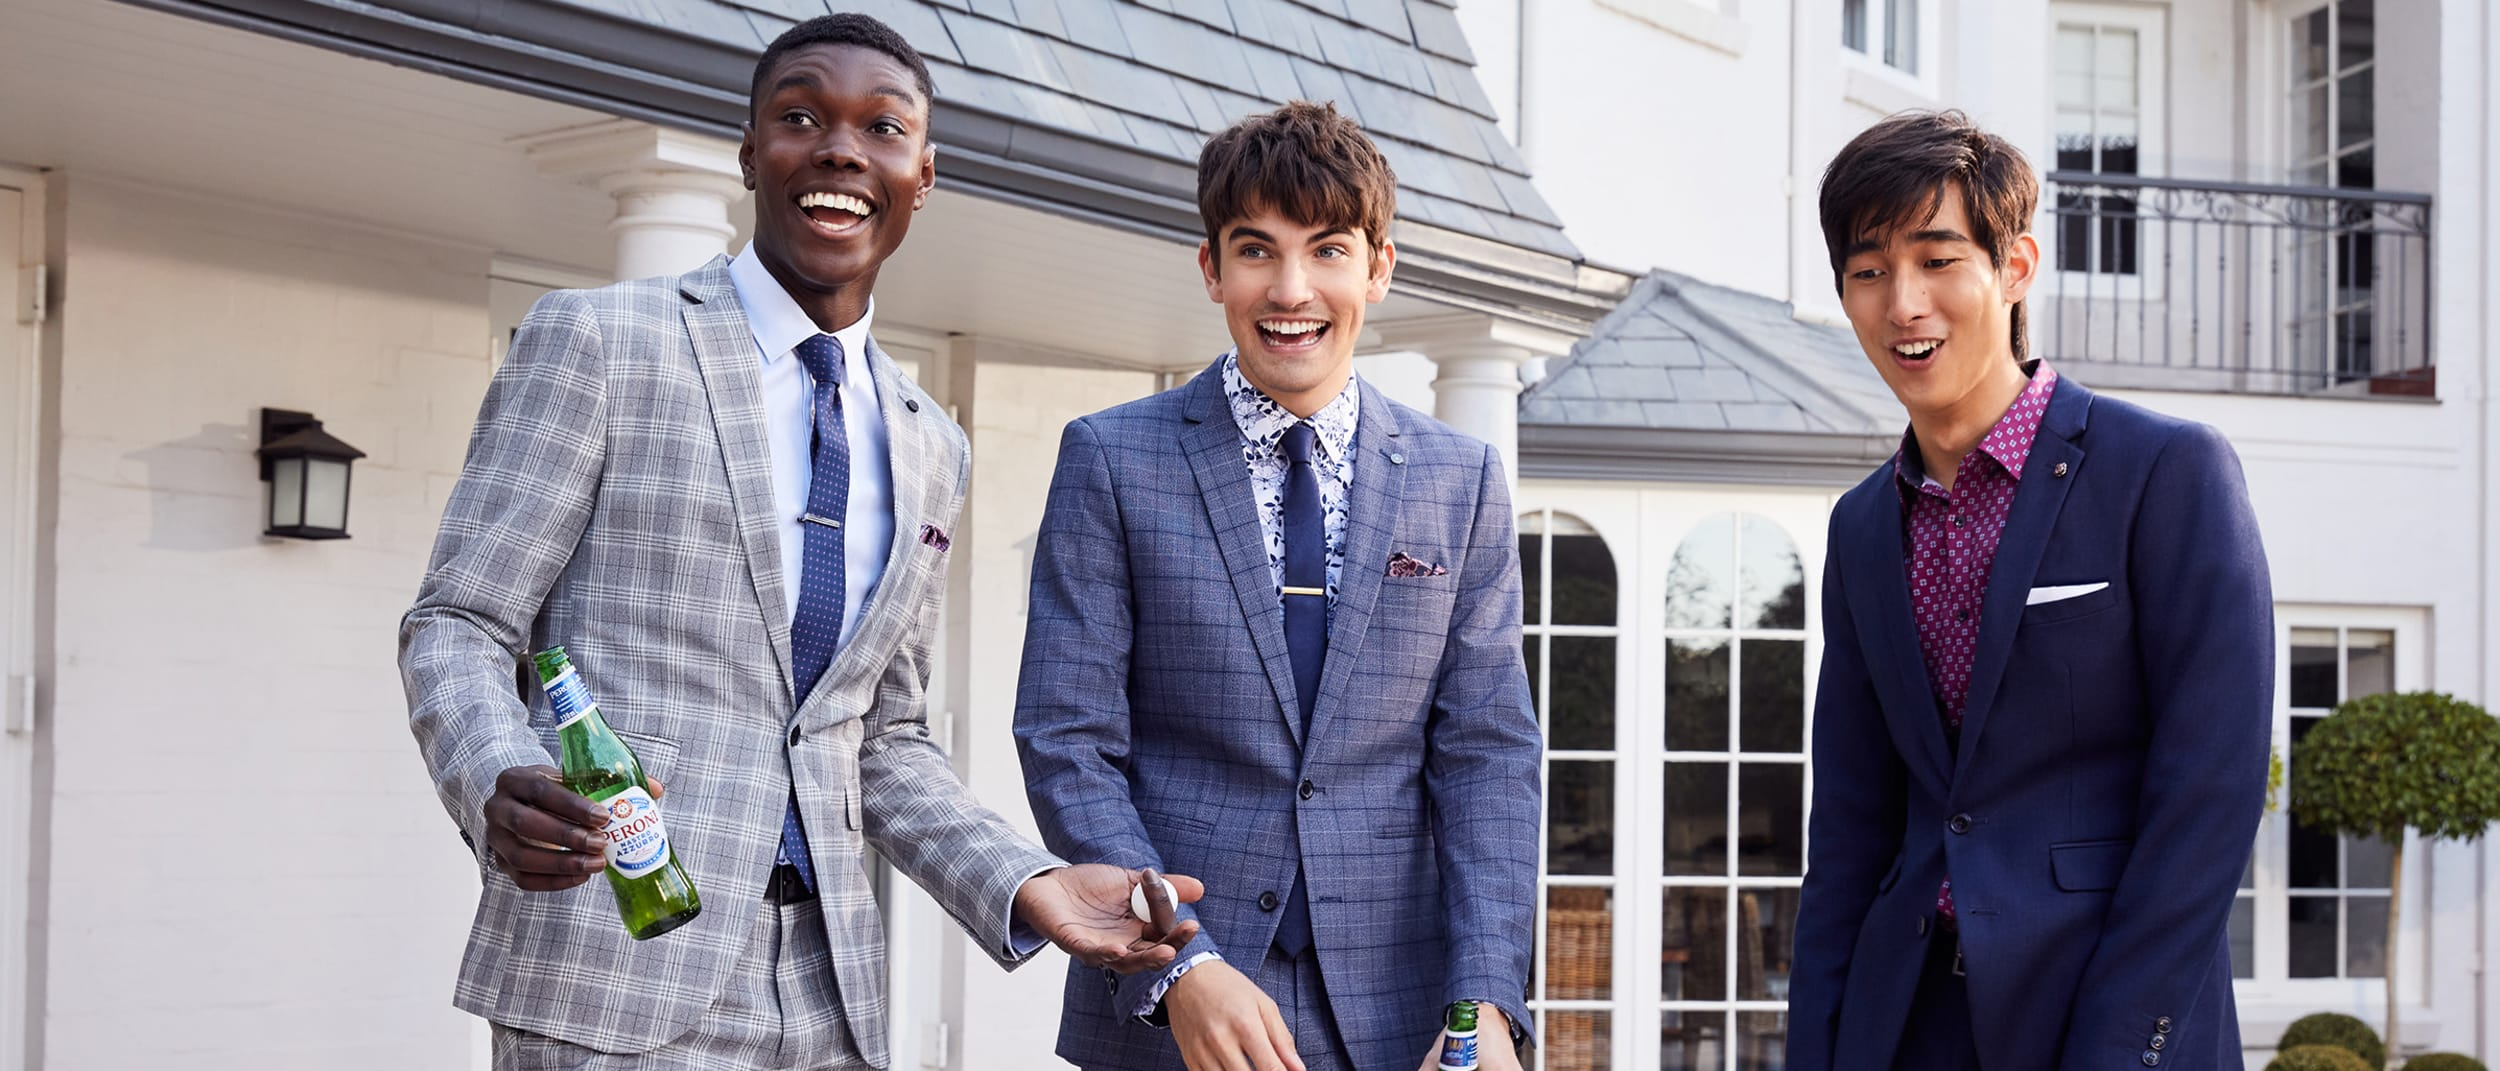 yd: $100 off suits